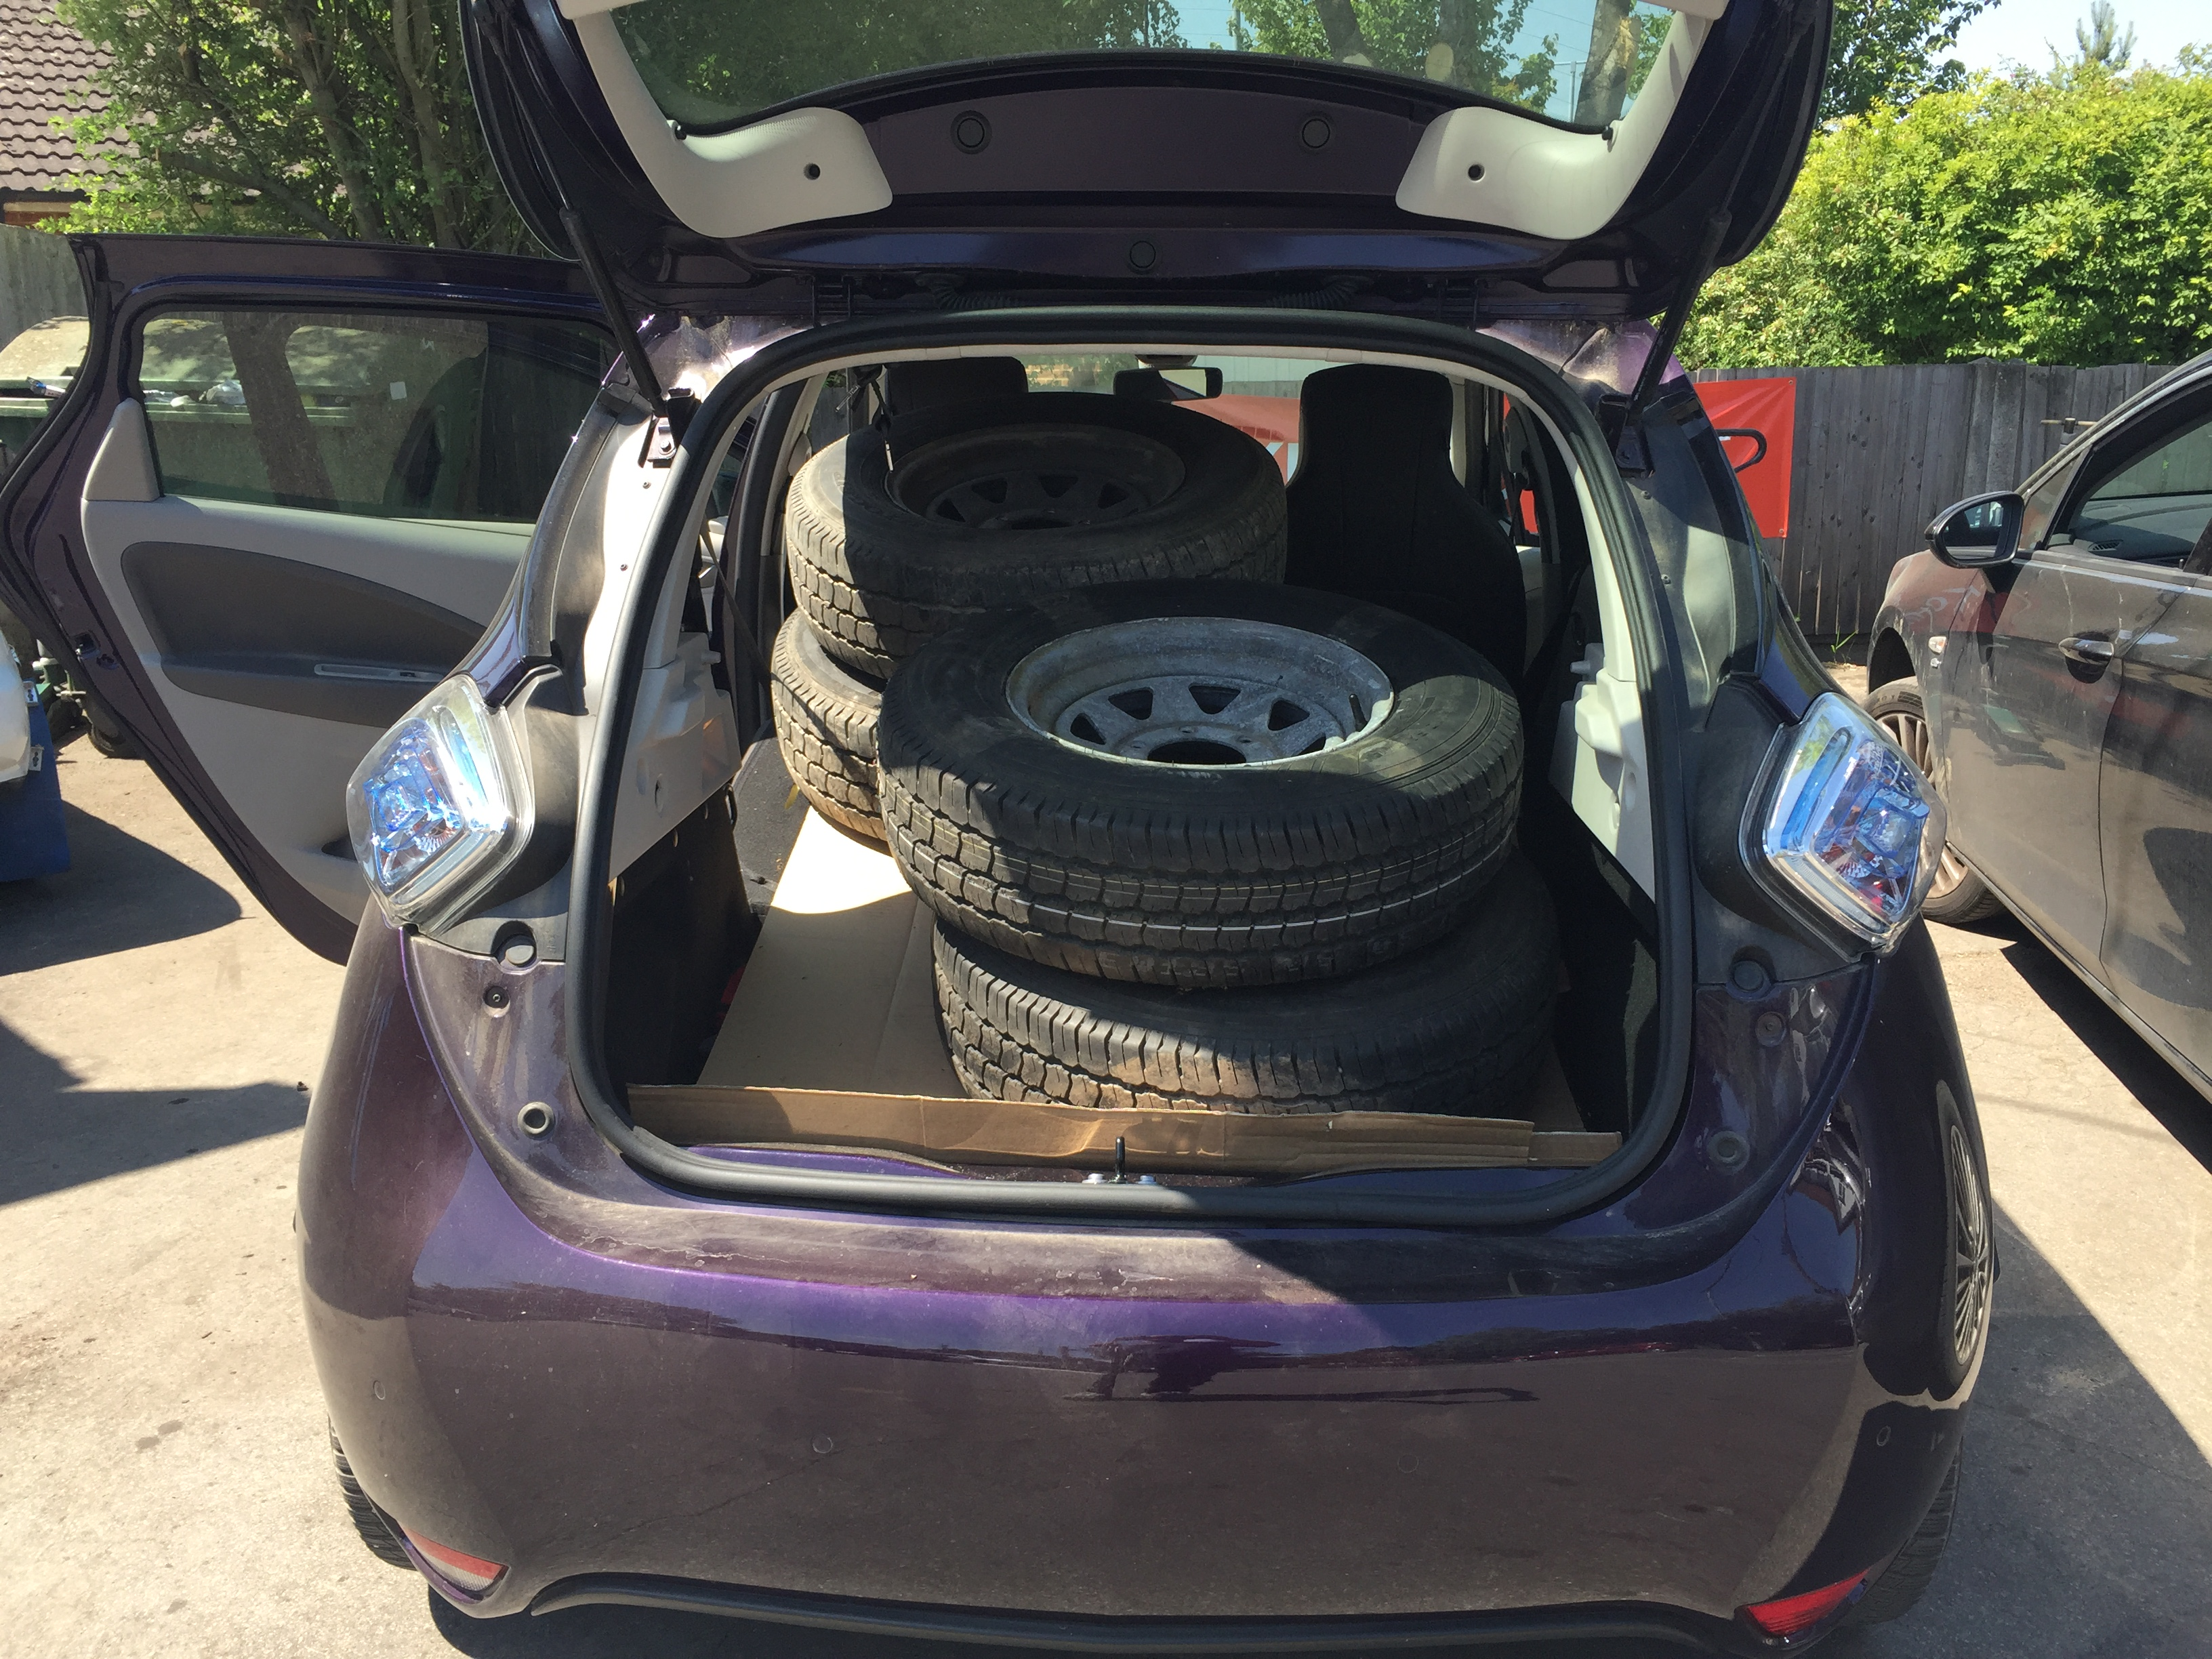 4 land cruiser tyres inside the back of purple Renault Zoe car - life with an electric vehicle